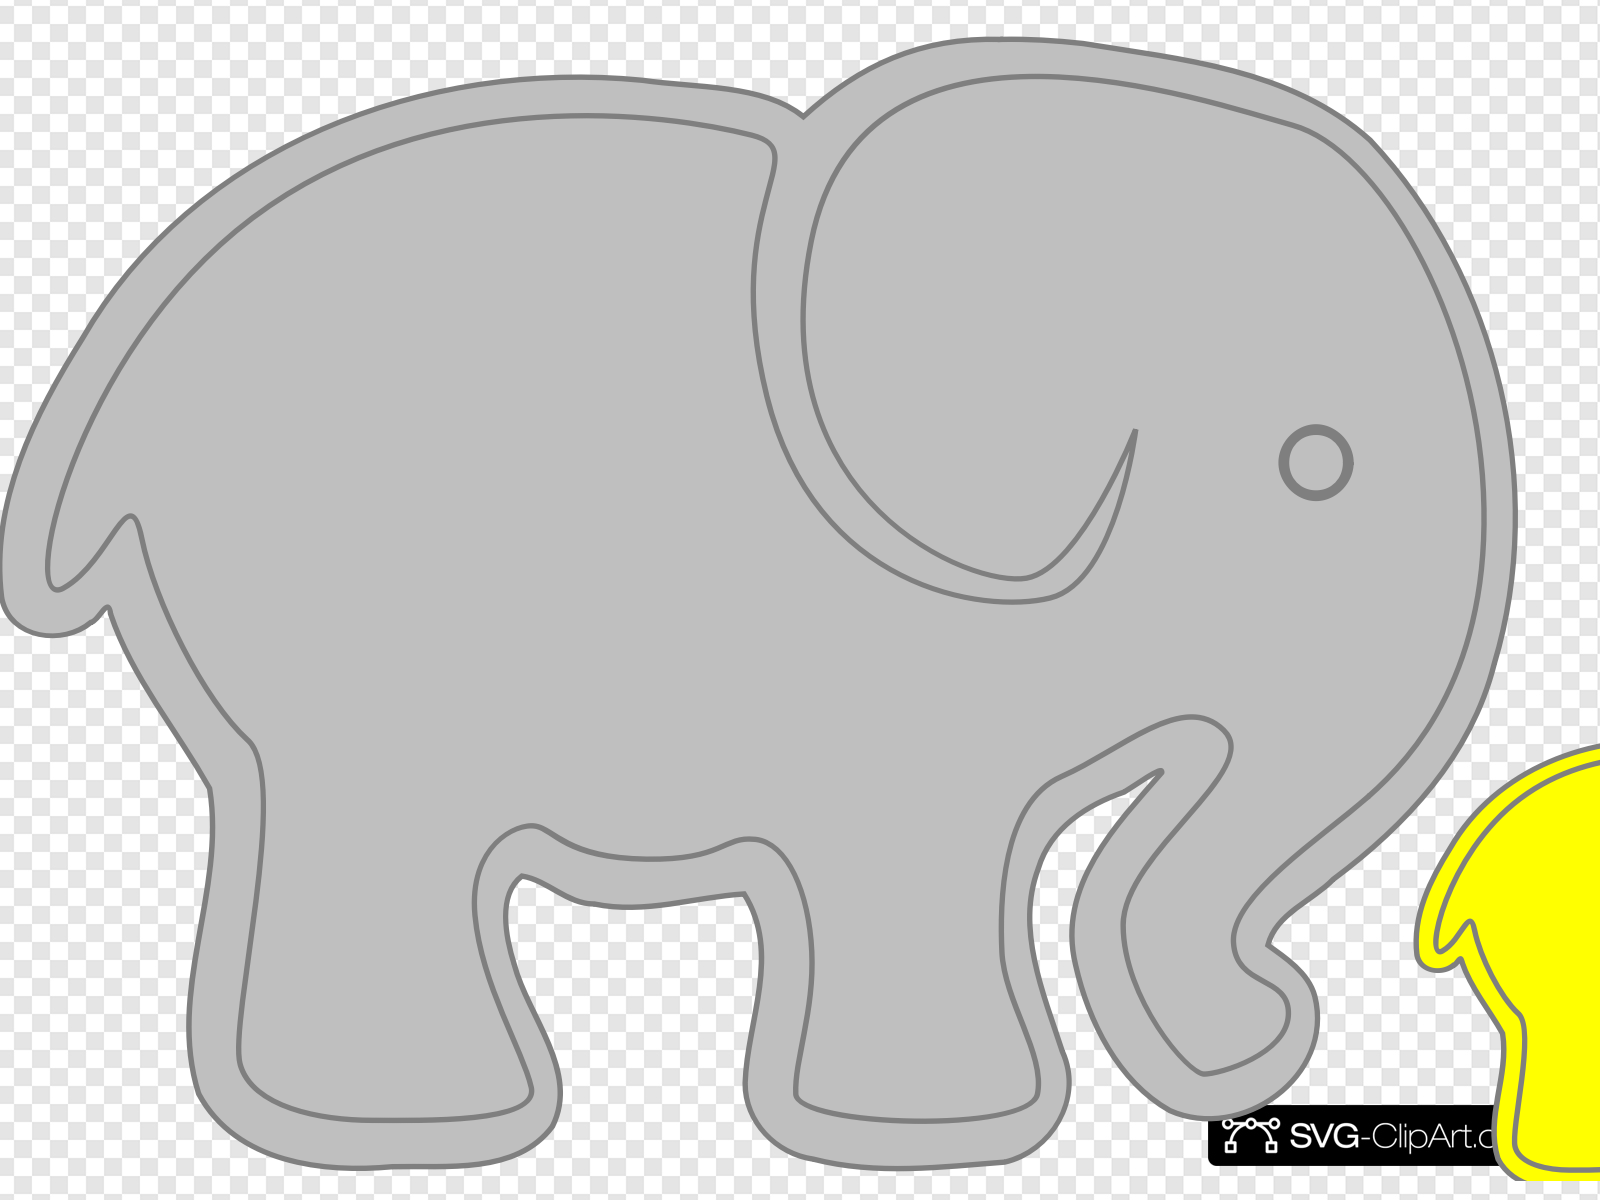 Adult Elephant With Baby Elephant Clip art, Icon and SVG.